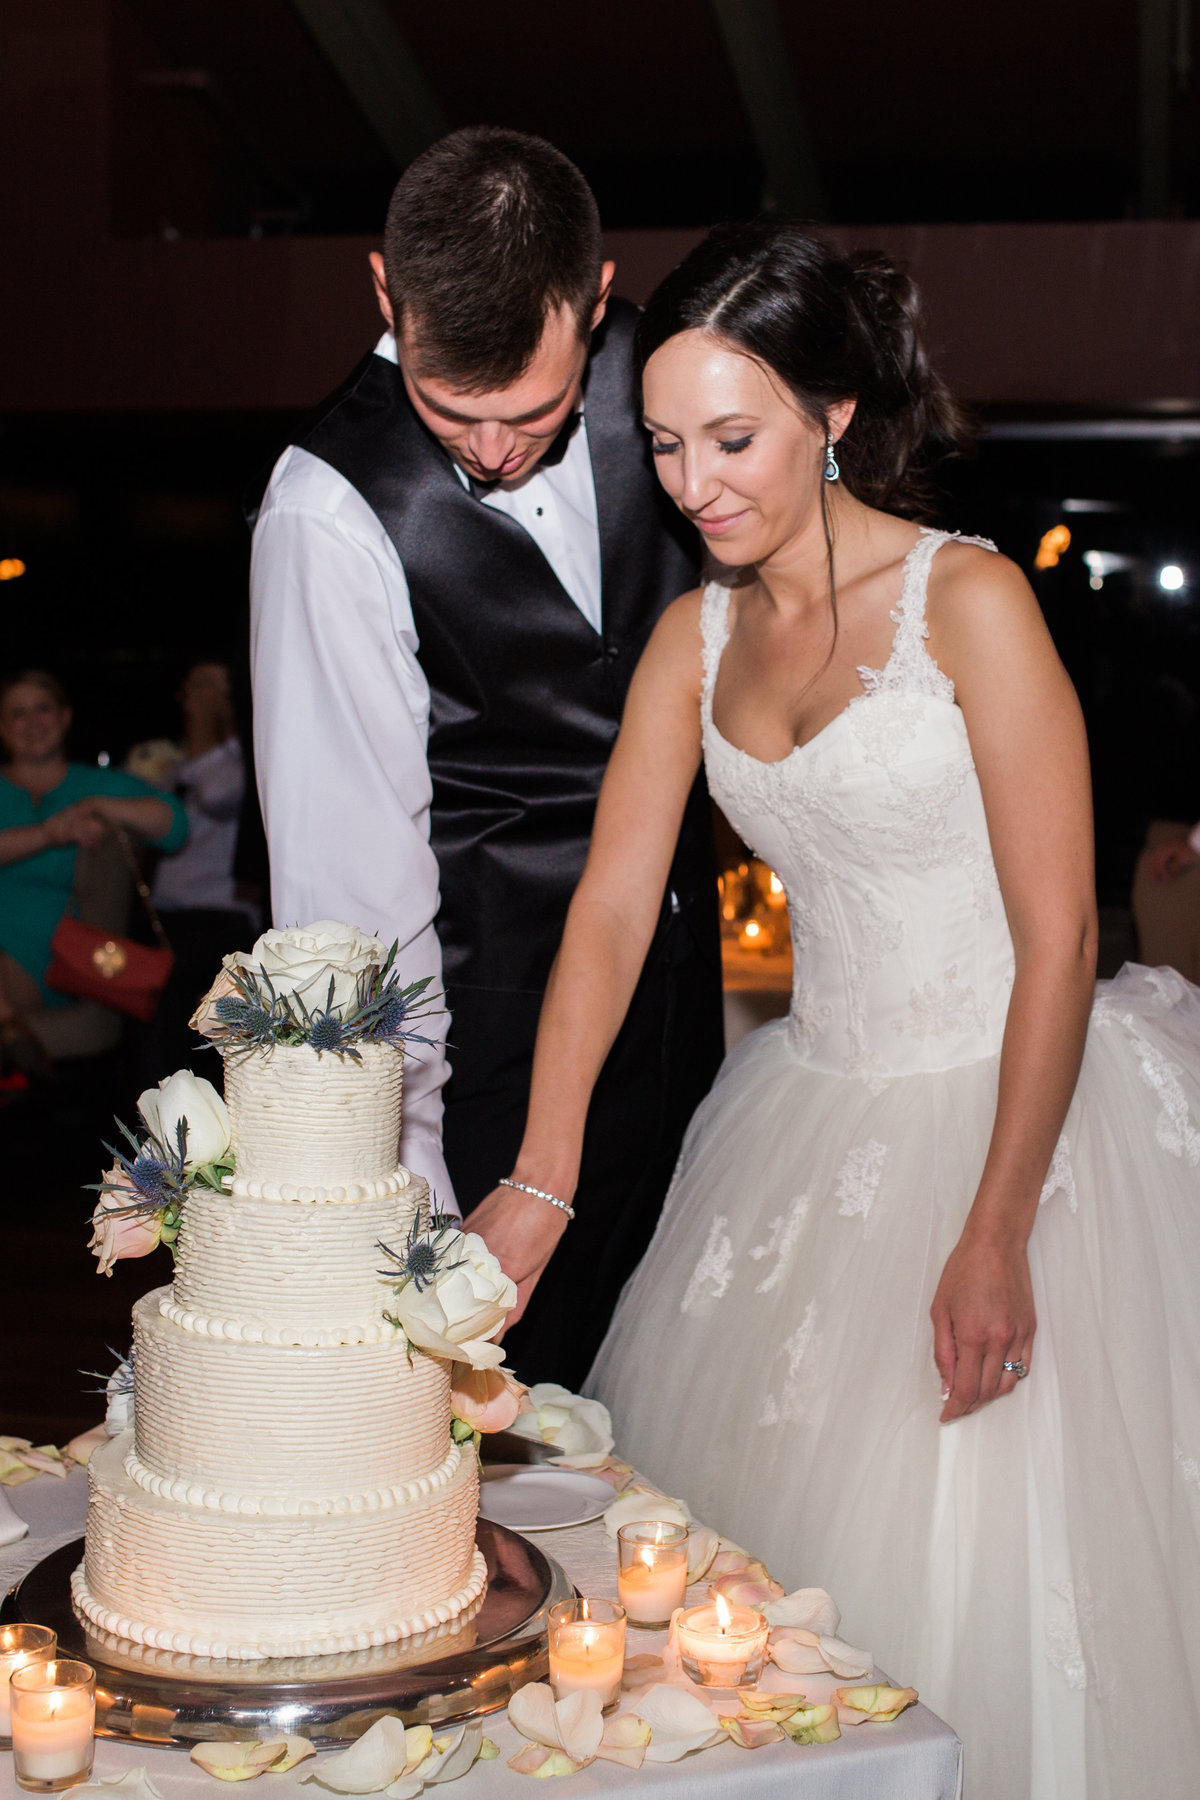 Keely_FJ_3966Tapatio_Cliff_Pointe_Hilton_Different_Pointe_Of_View_Wedding